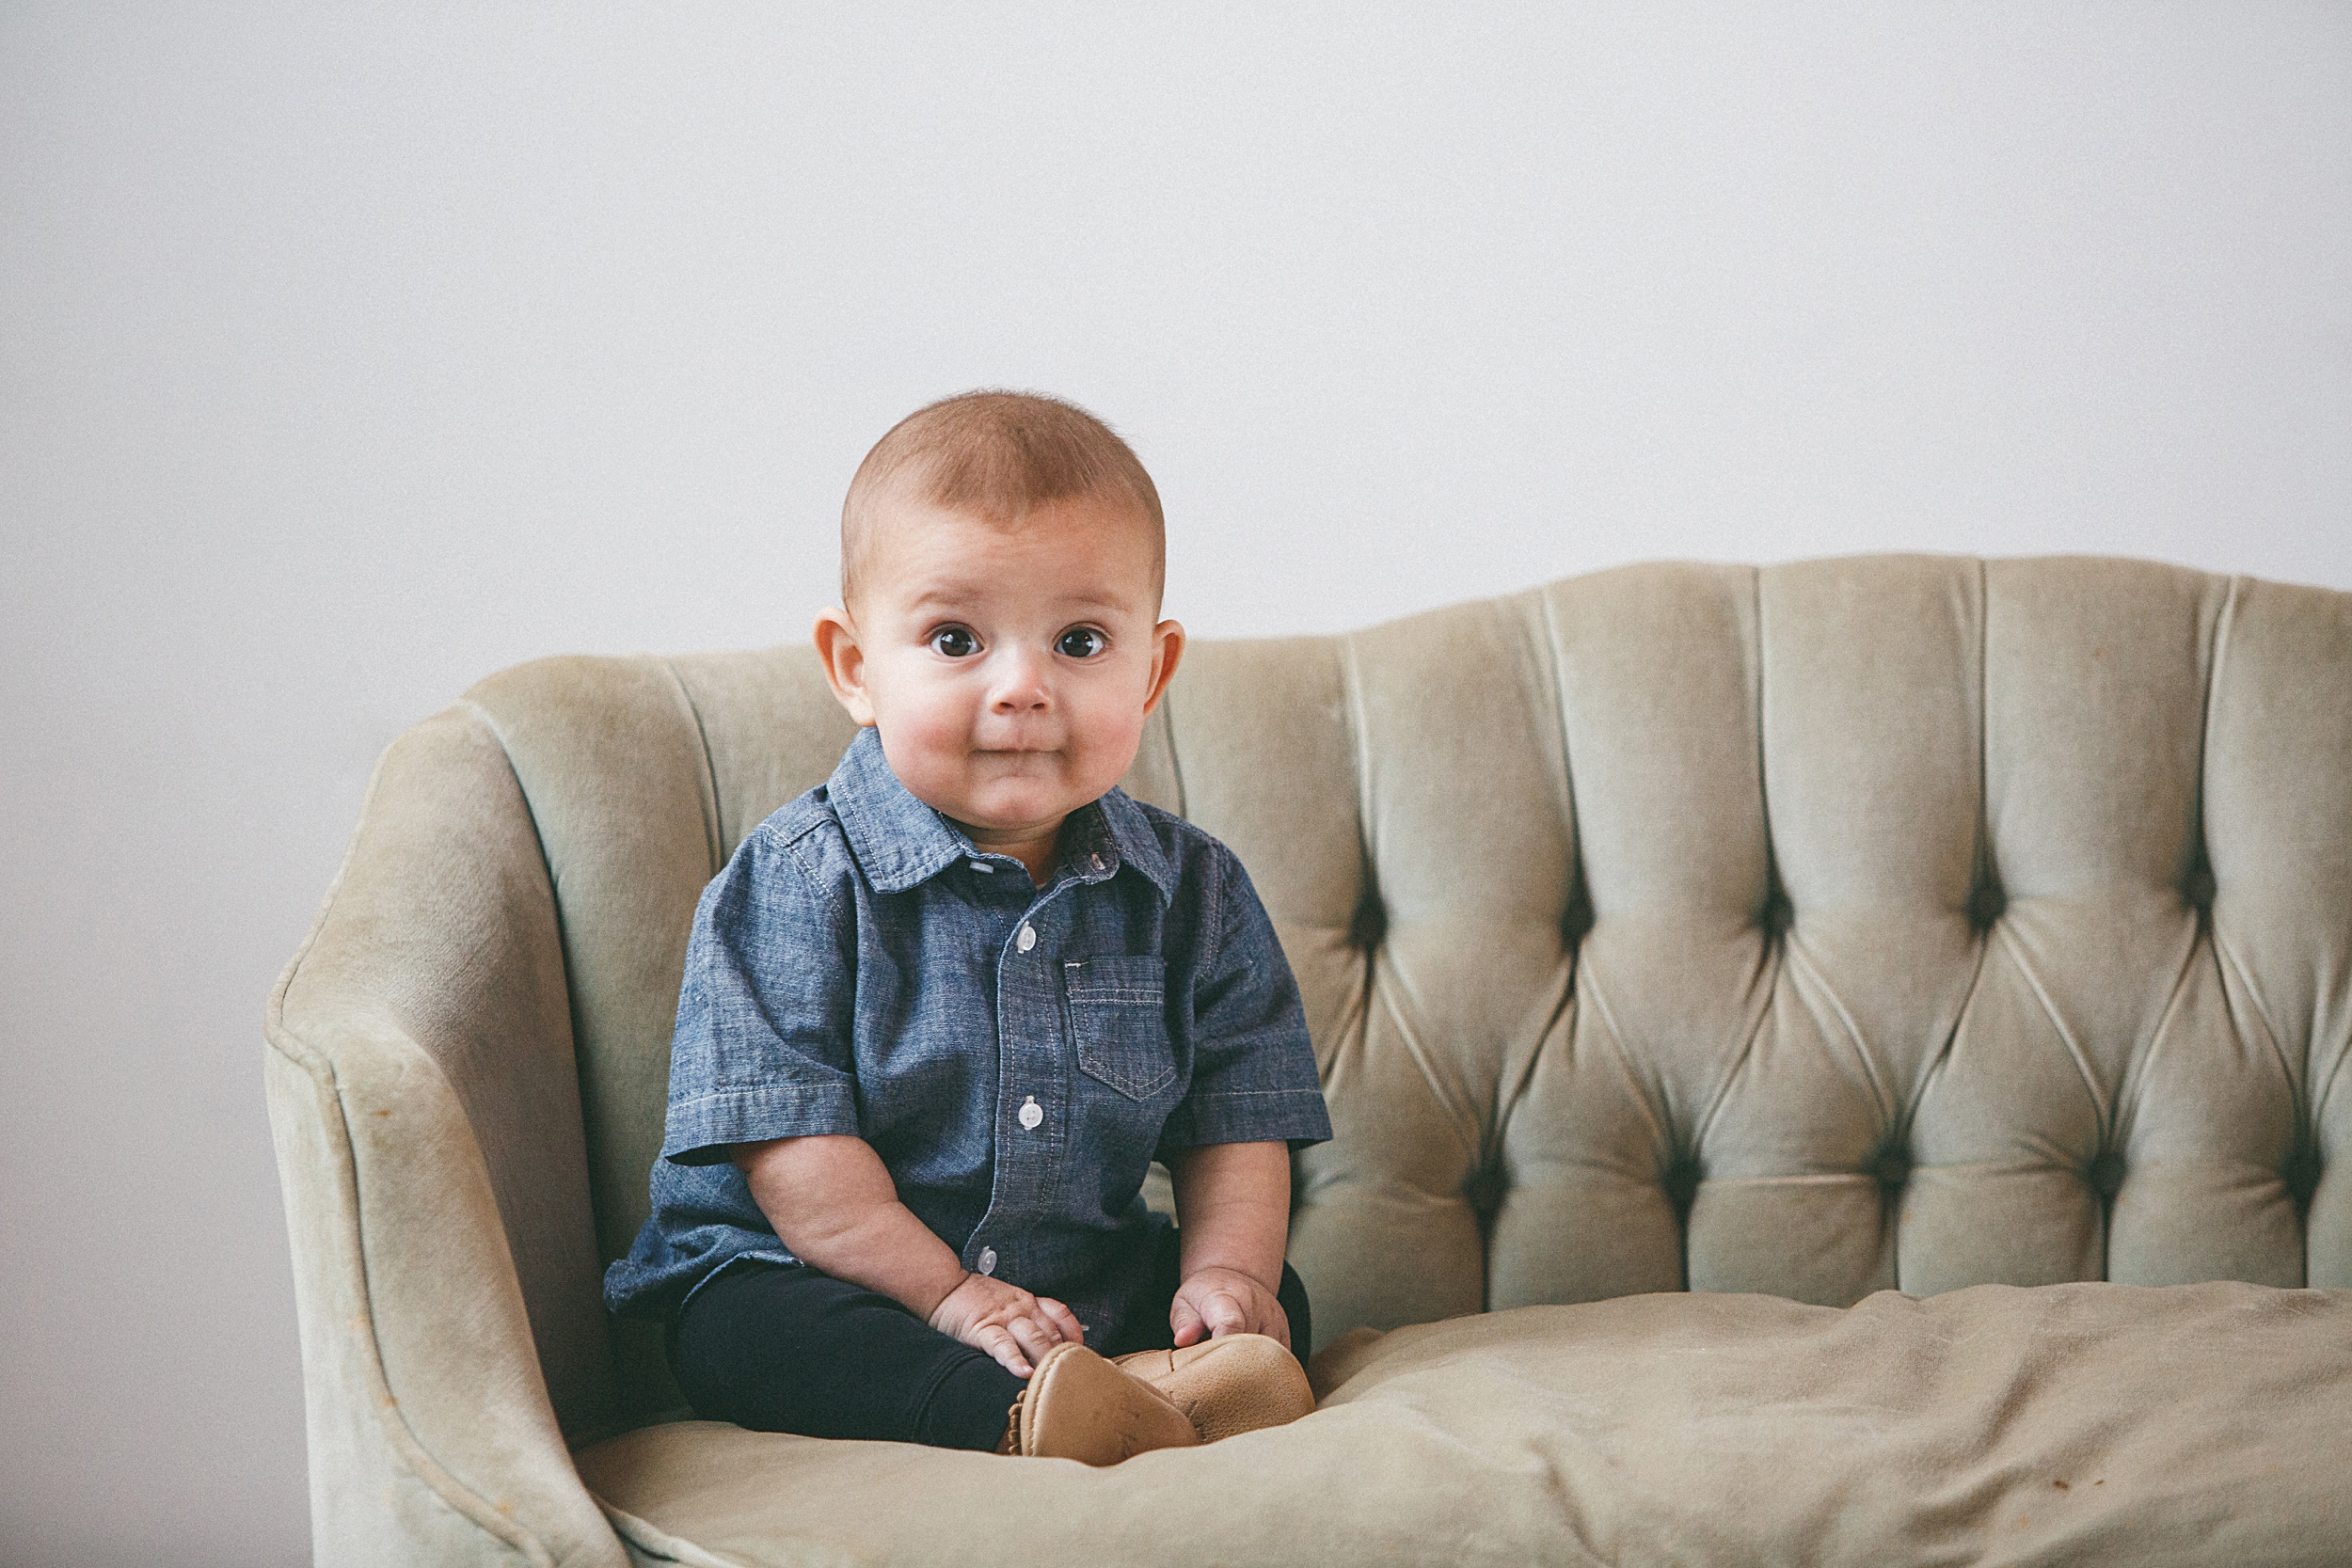 Kelly_Kester_Photography_Studio_Baby_Sitting.jpg